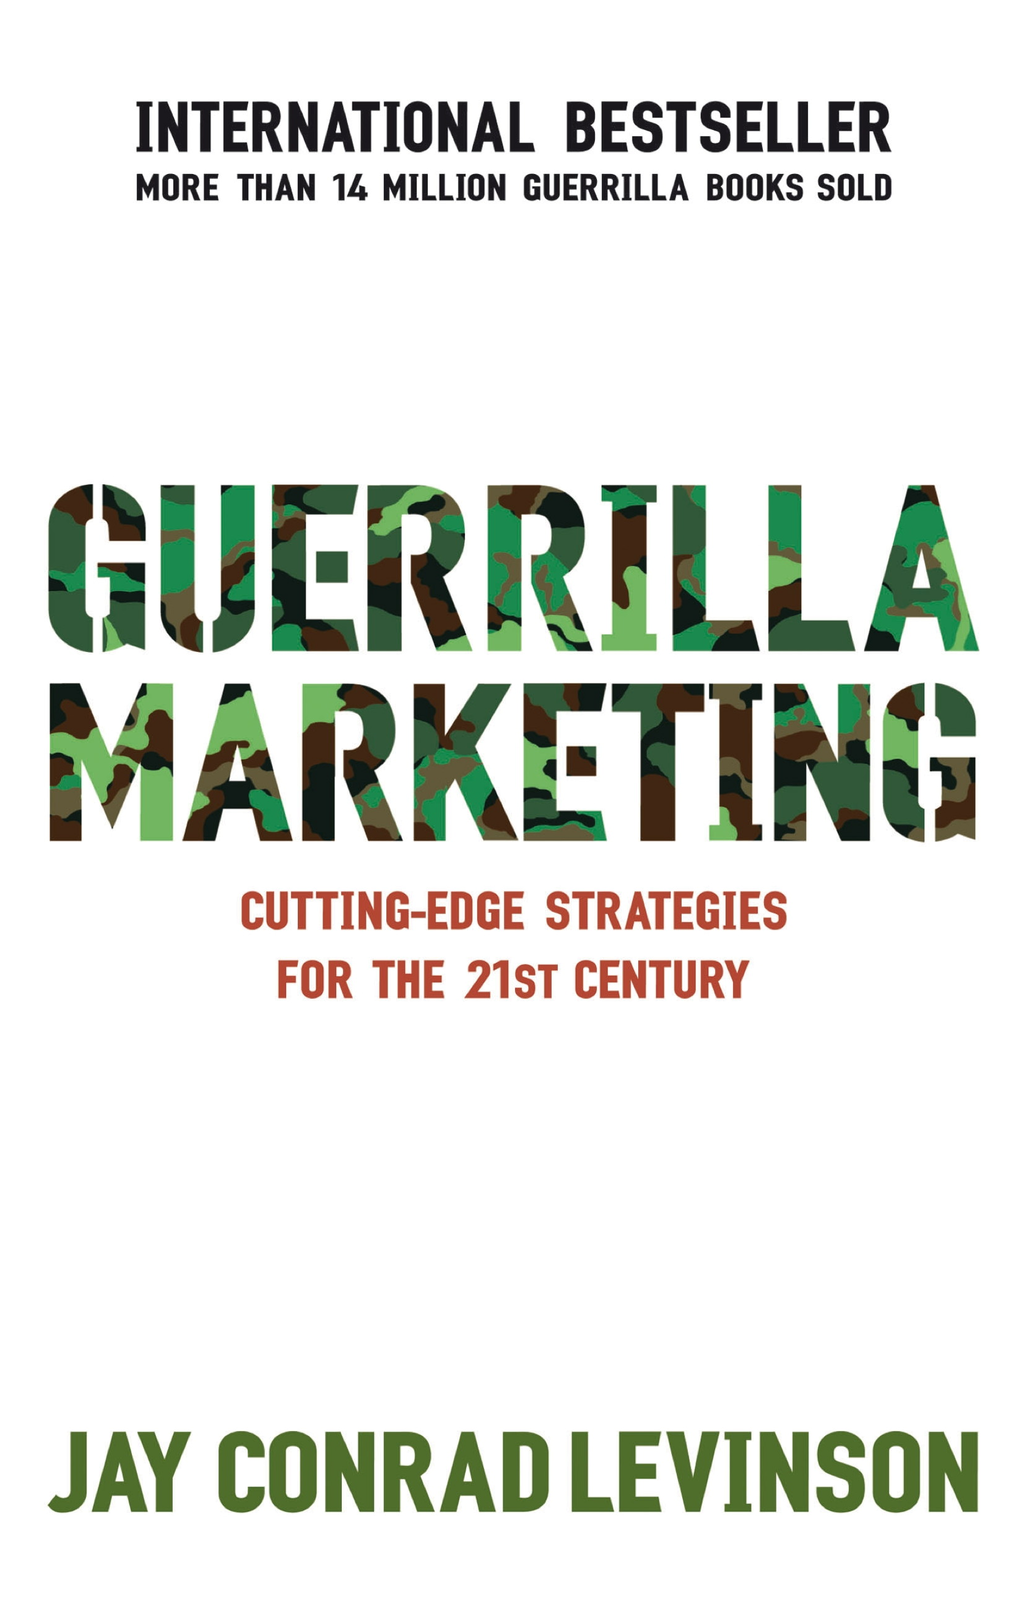 Guerrilla Marketing Cutting-edge strategies for the 21st century